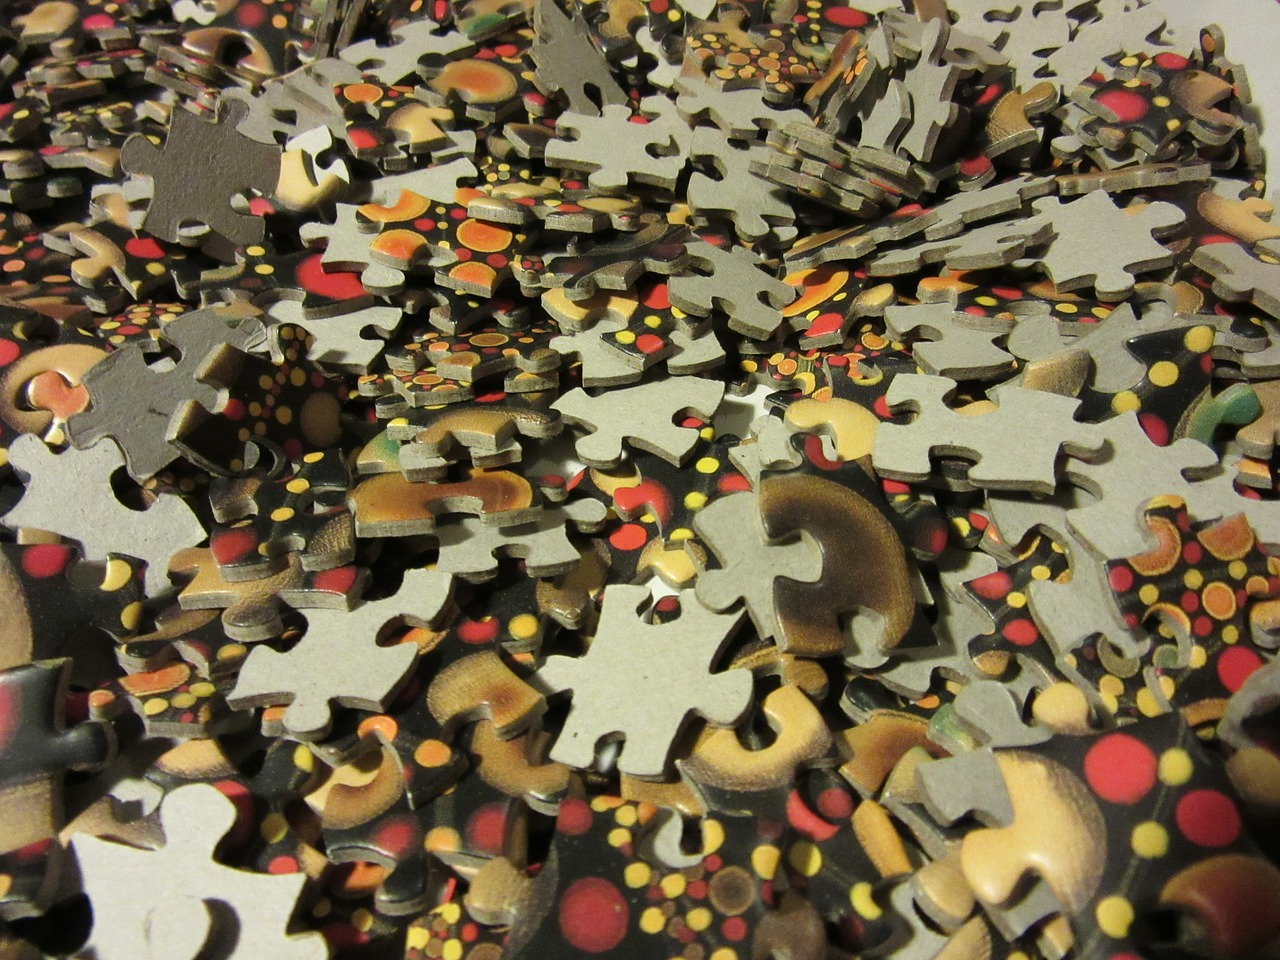 FREE puzzle Stock Photos from PikWizard